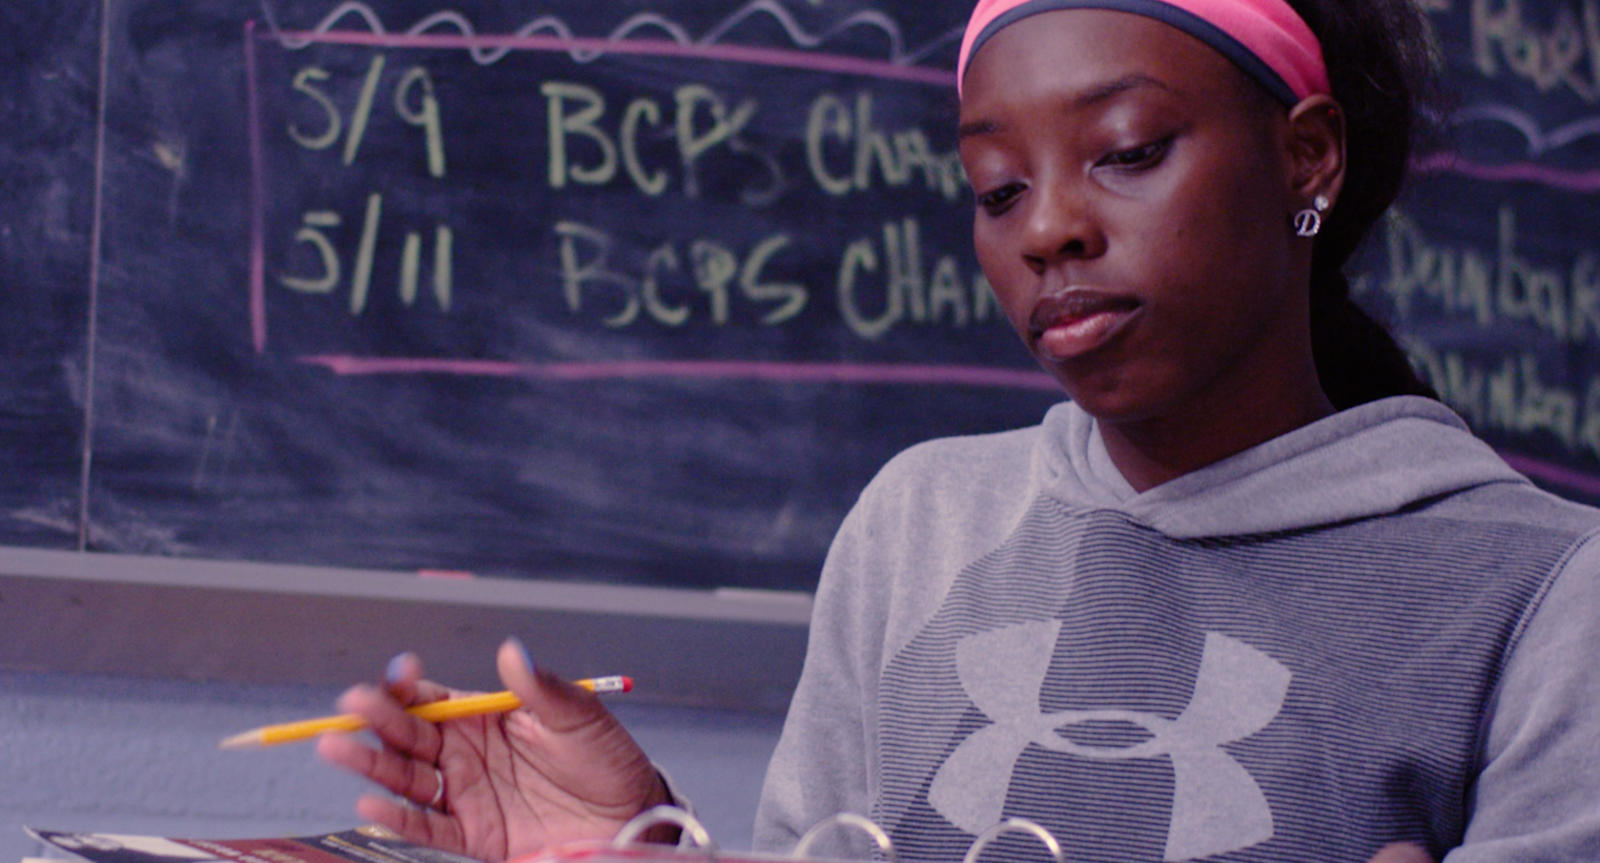 This Baltimore student-athlete works as hard in the classroom as she does on the track.